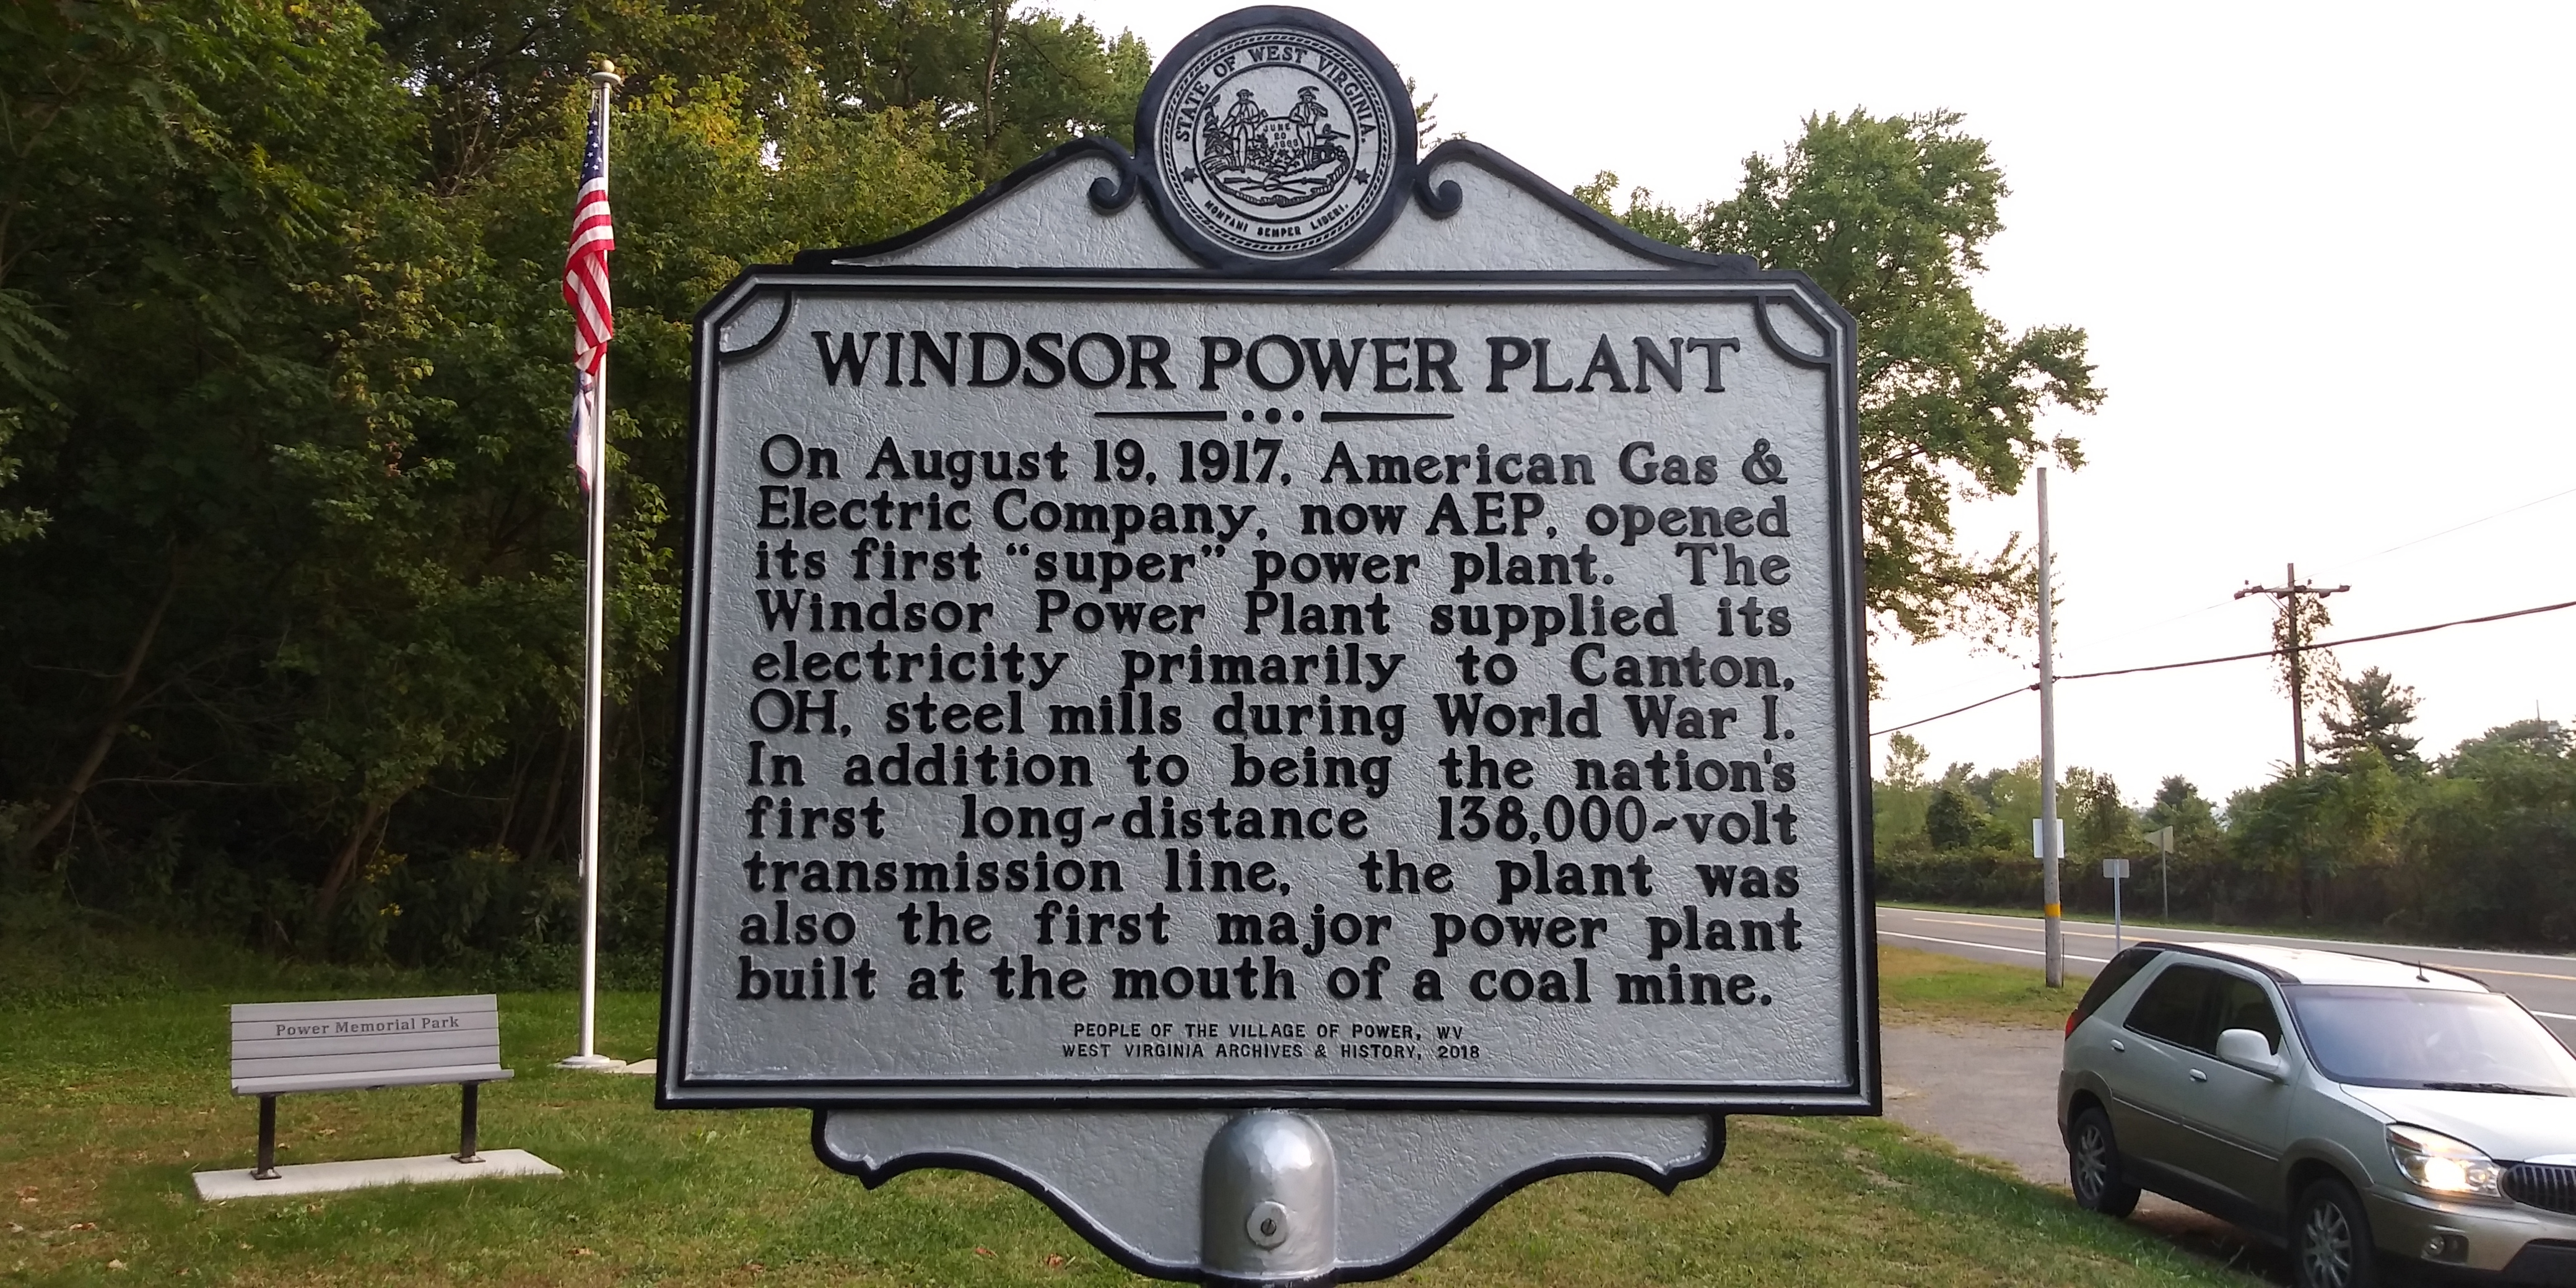 Windsor Power Plant side of the marker